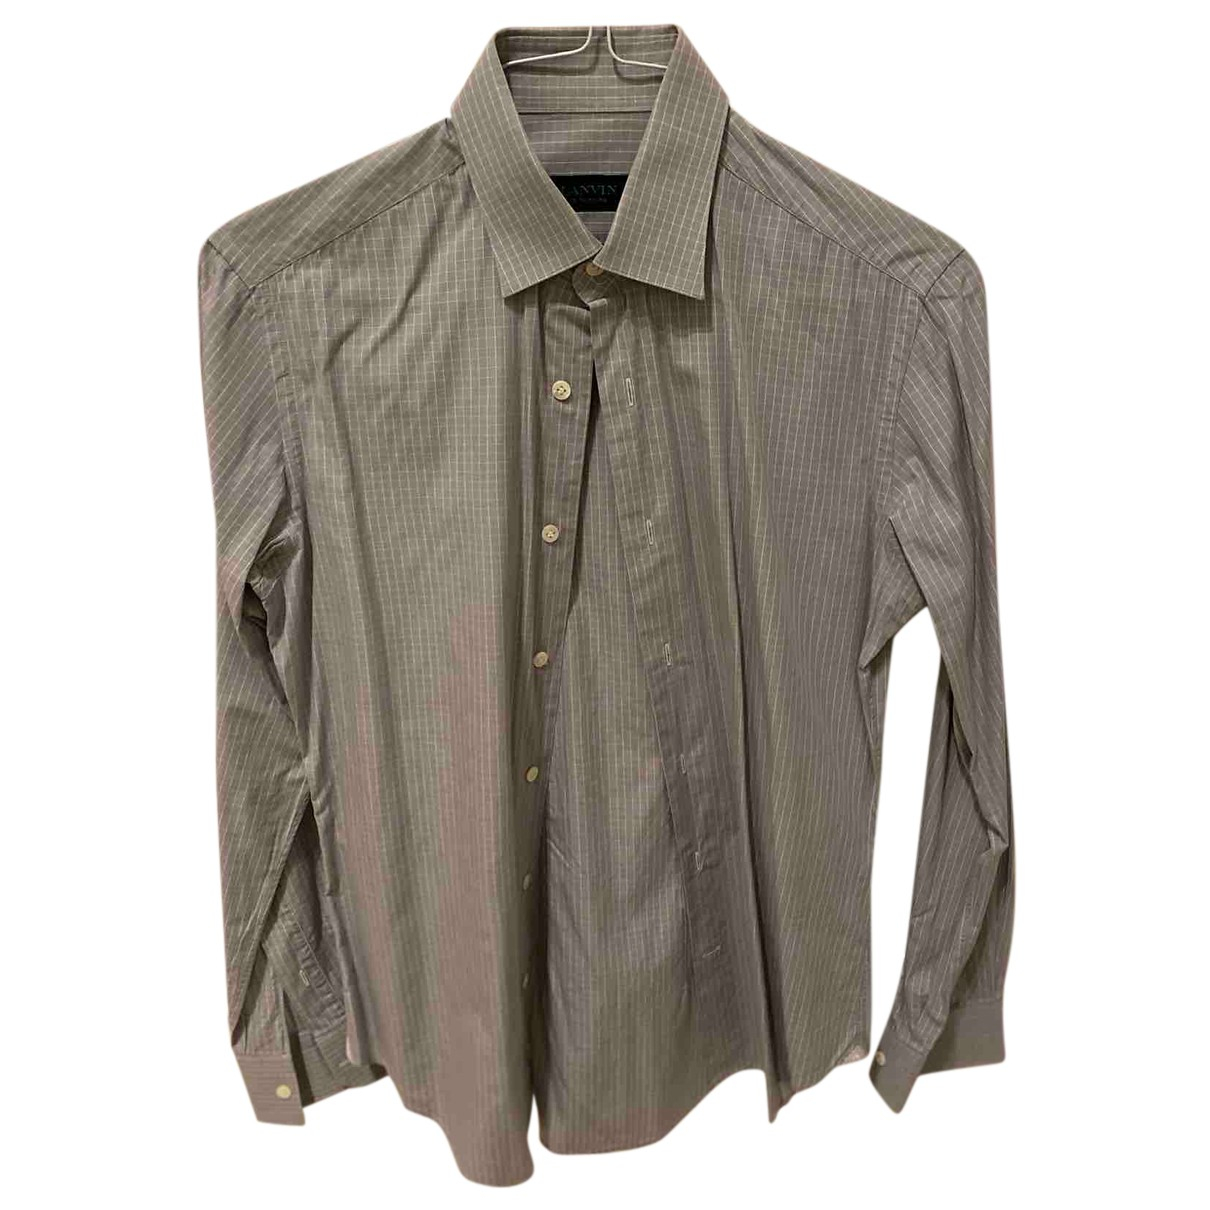 Lanvin N Grey Cotton Shirts for Men 39 EU (tour de cou / collar)